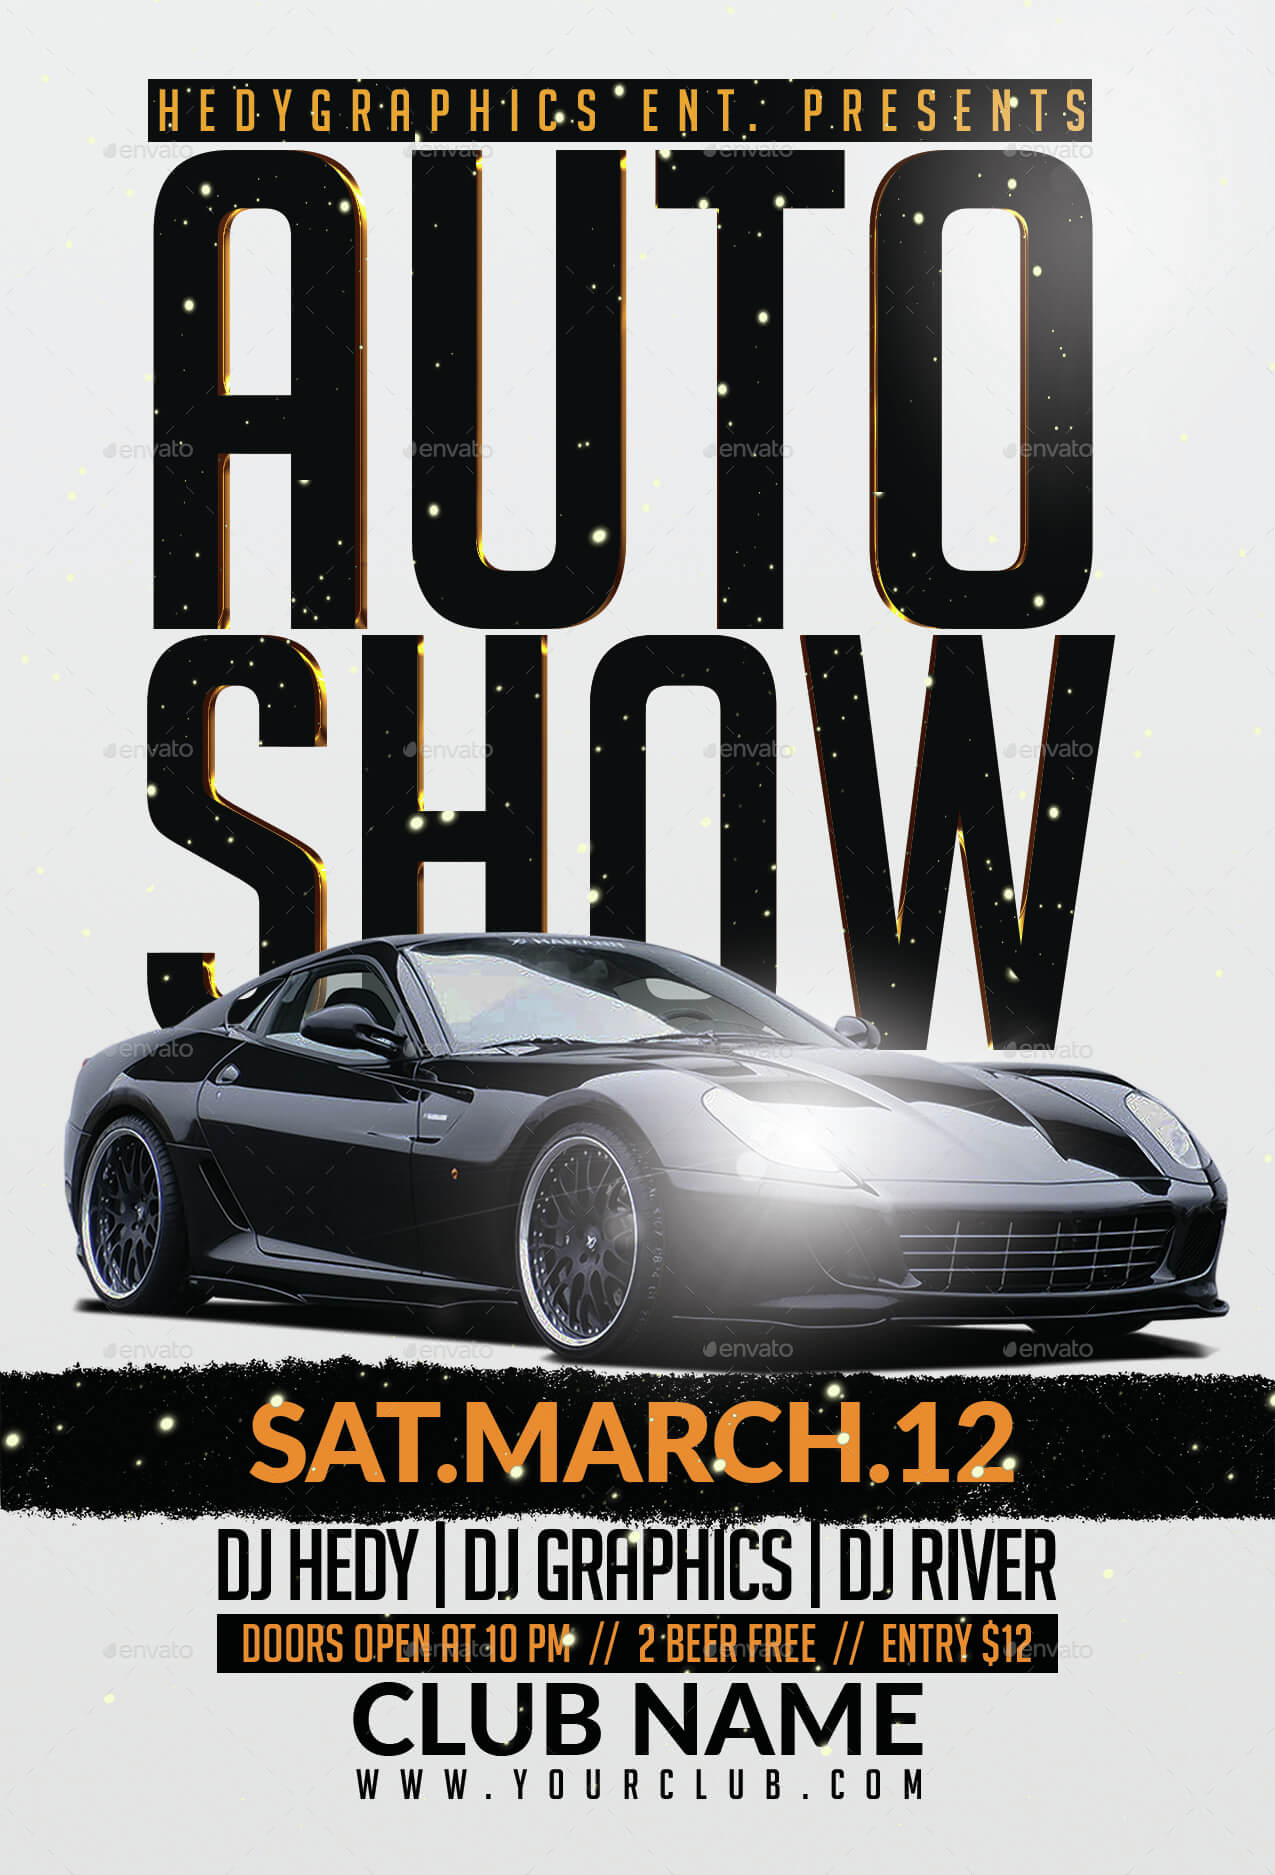 002 Template Ideas Free Car Show Flyer Exceptional Psd Word For Car Show Flyer Template